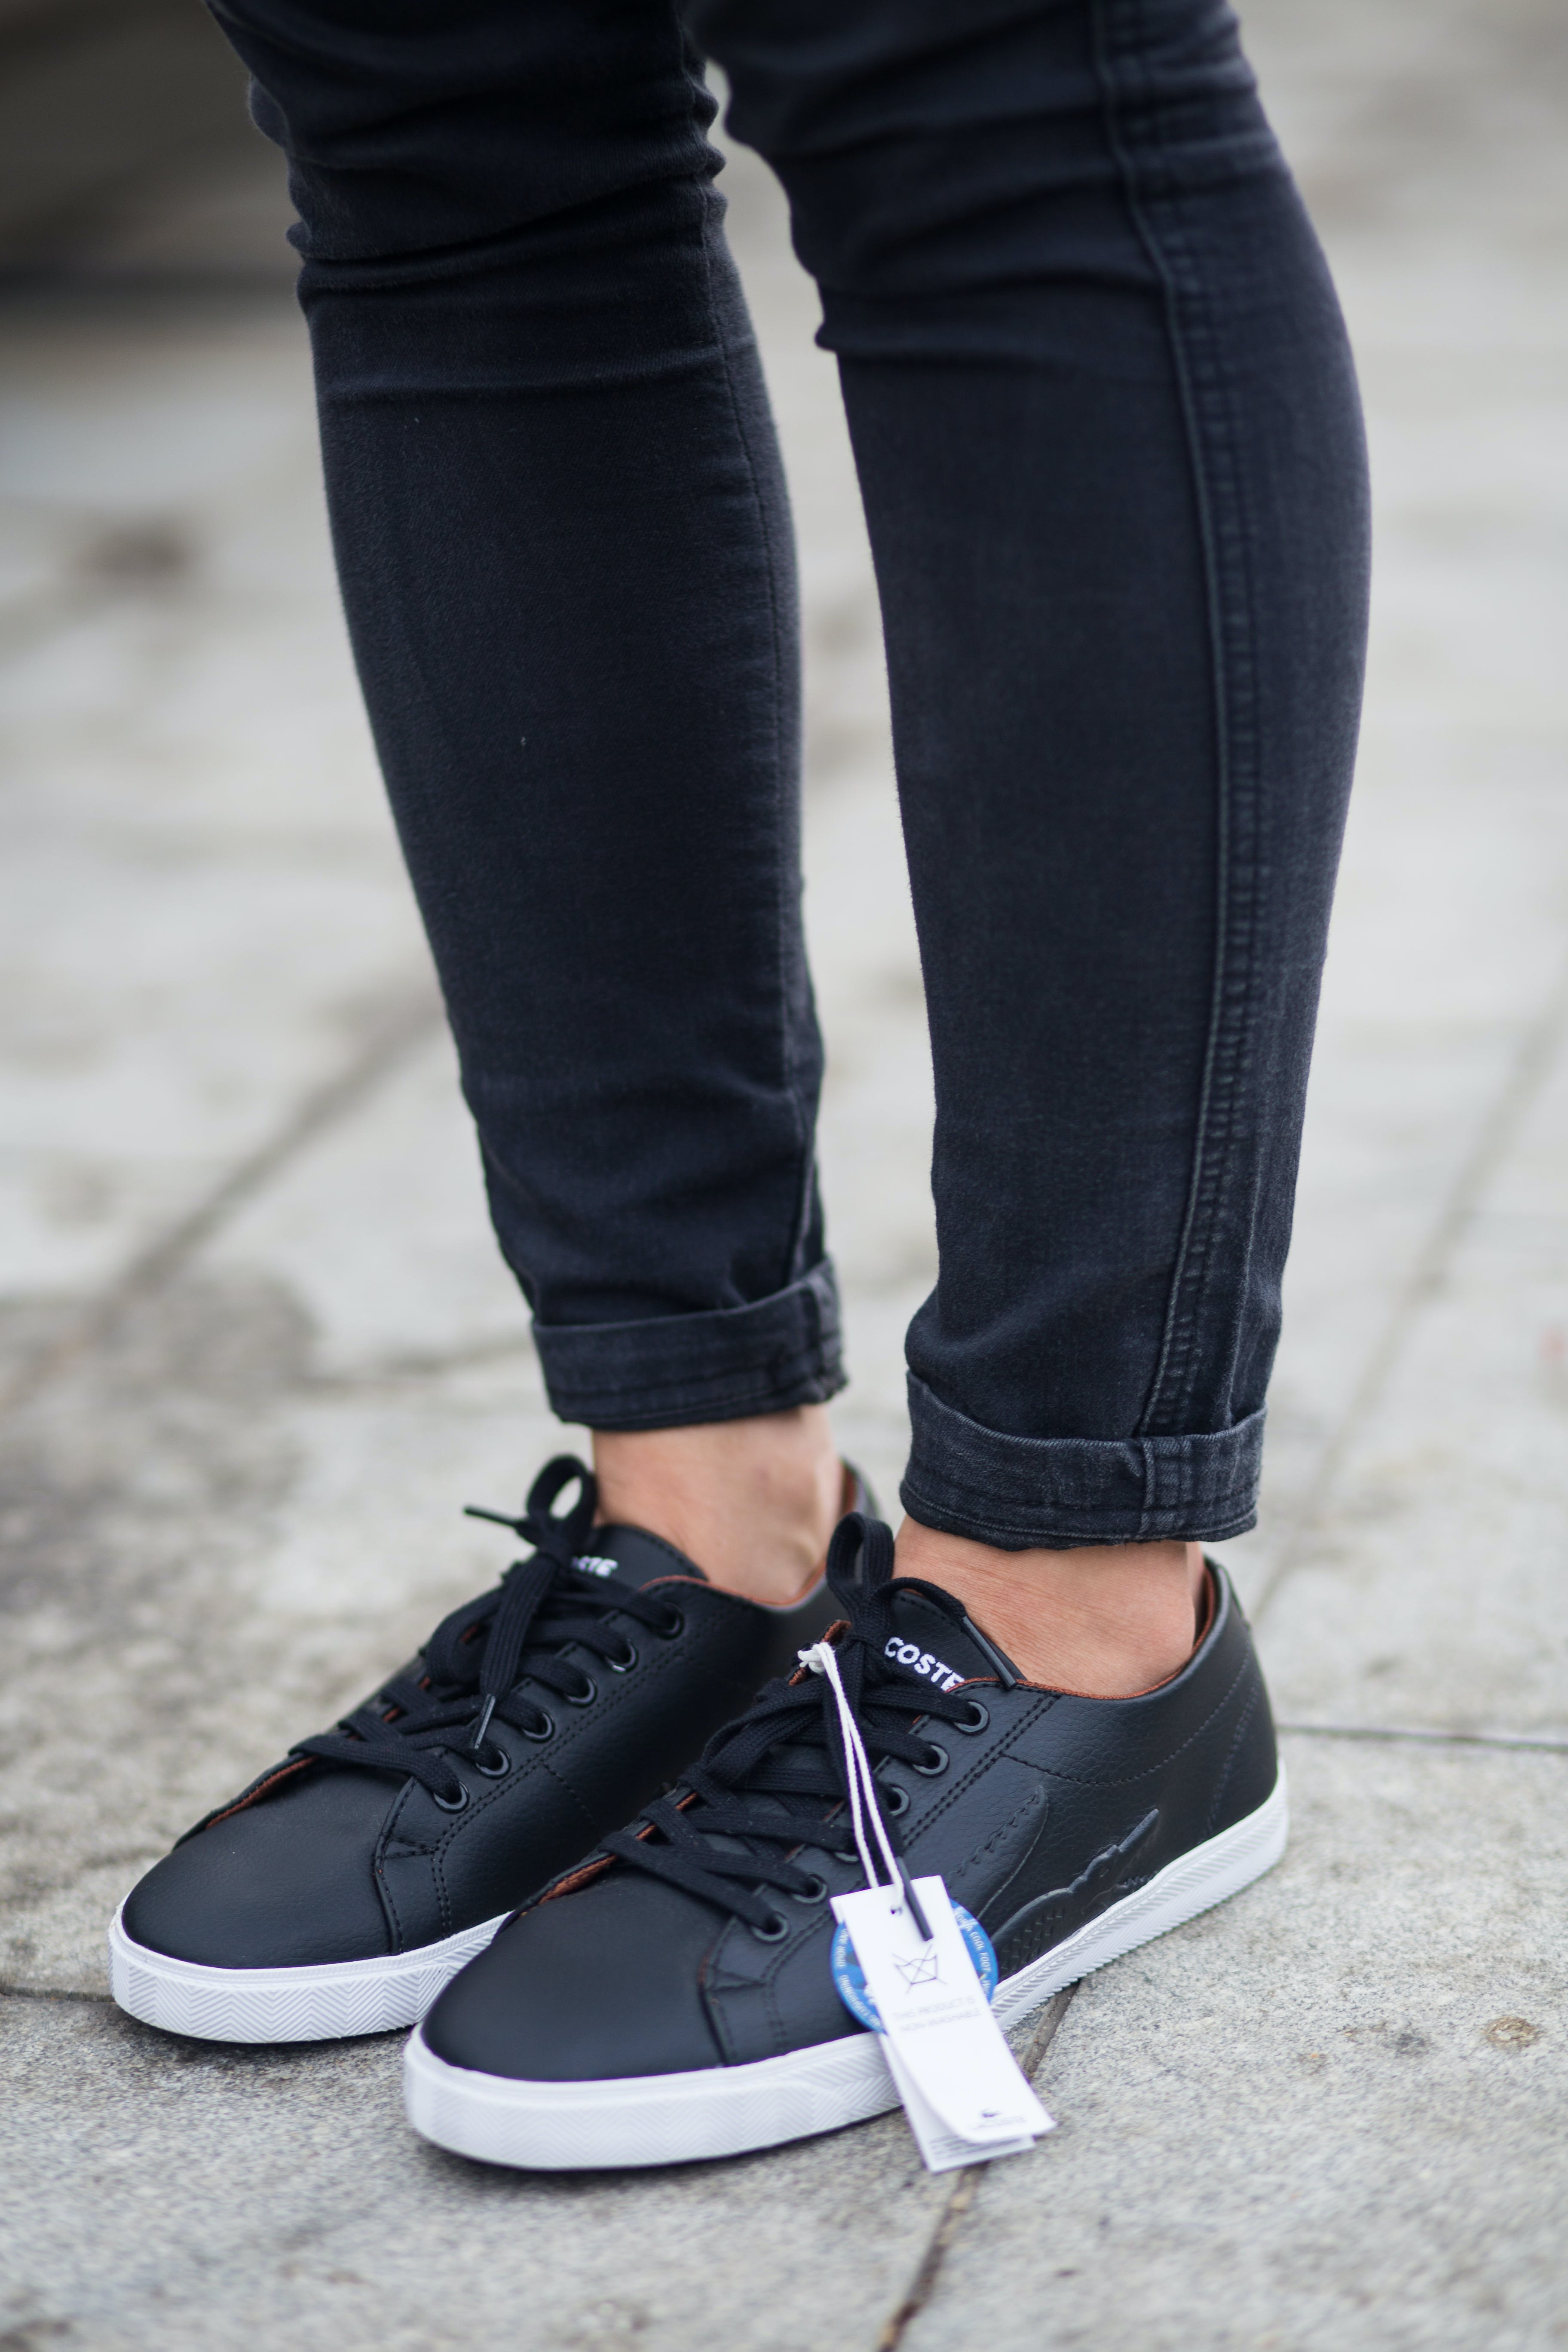 Person Wearing Black Pants And Pair Of Black Sneakers